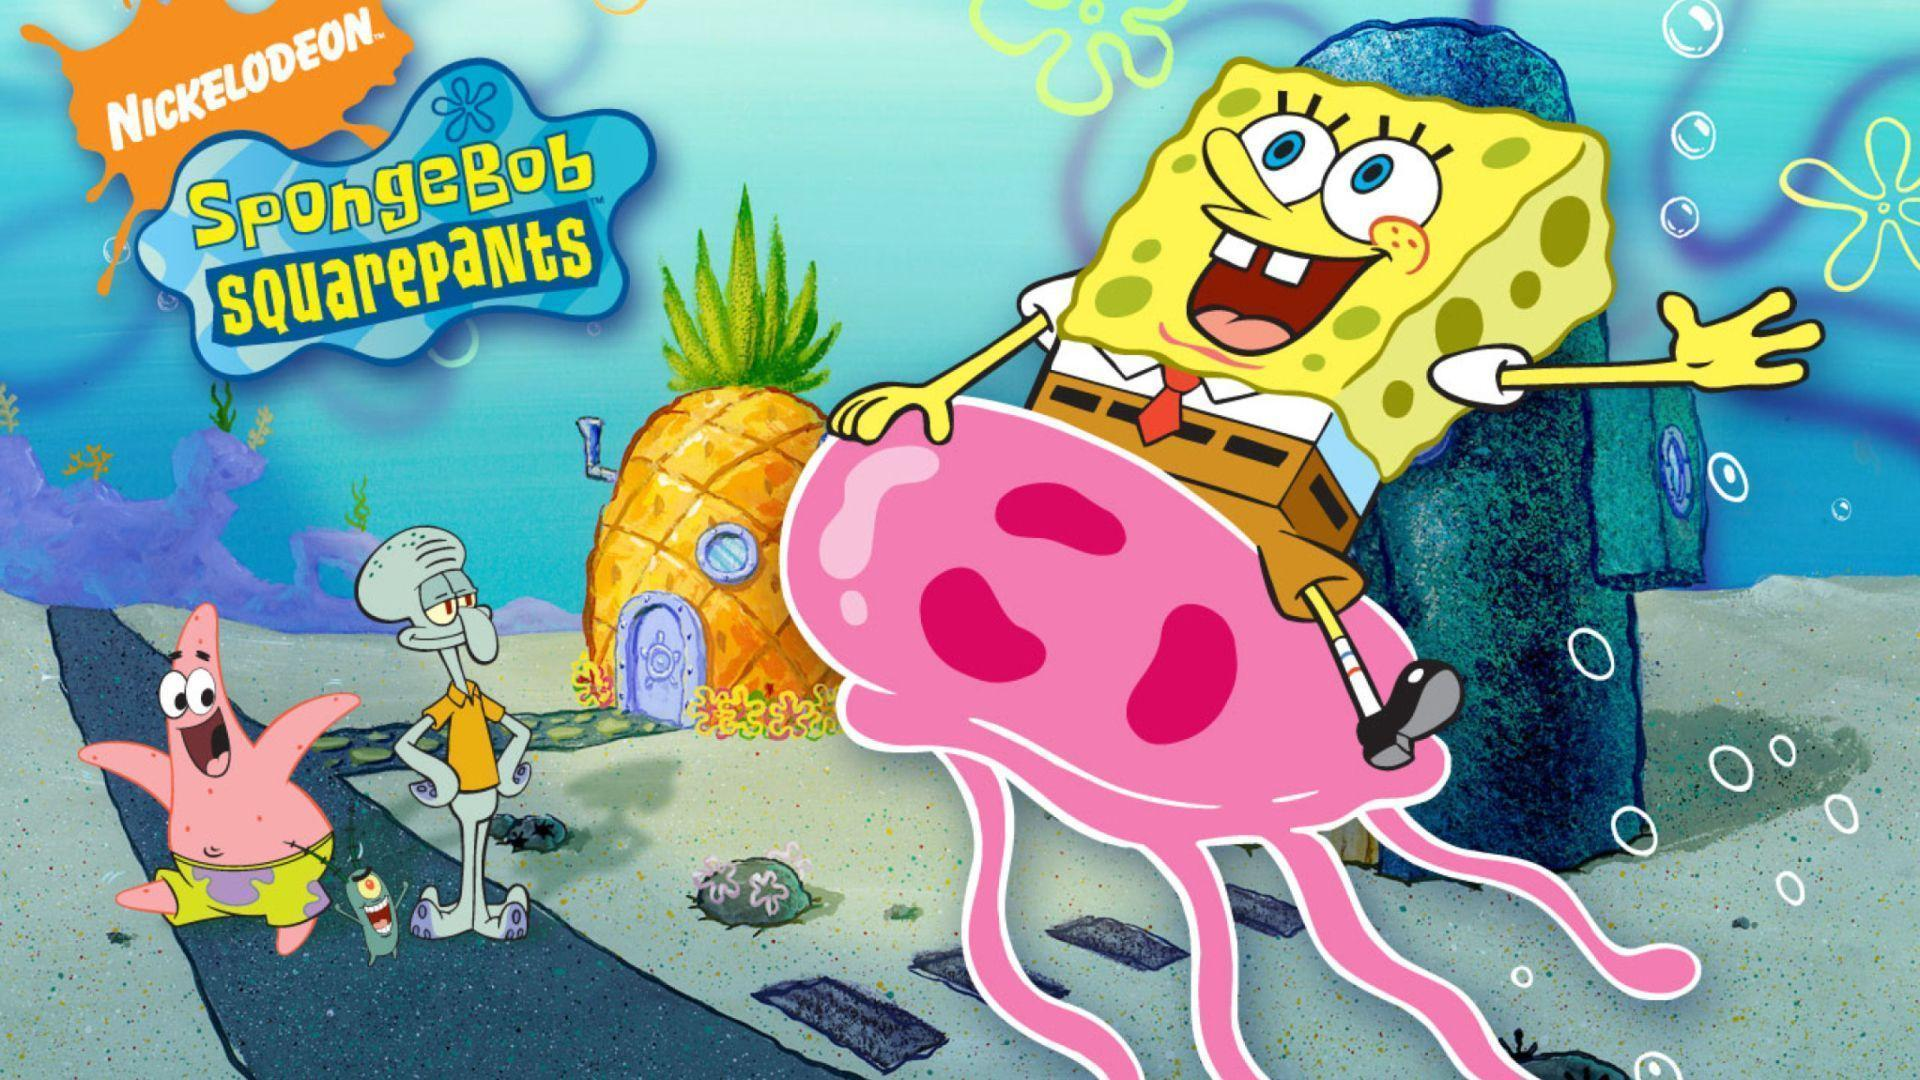 Nickelodeon Spongebob Squarepants Wallpapers for Desktop 1920x1080